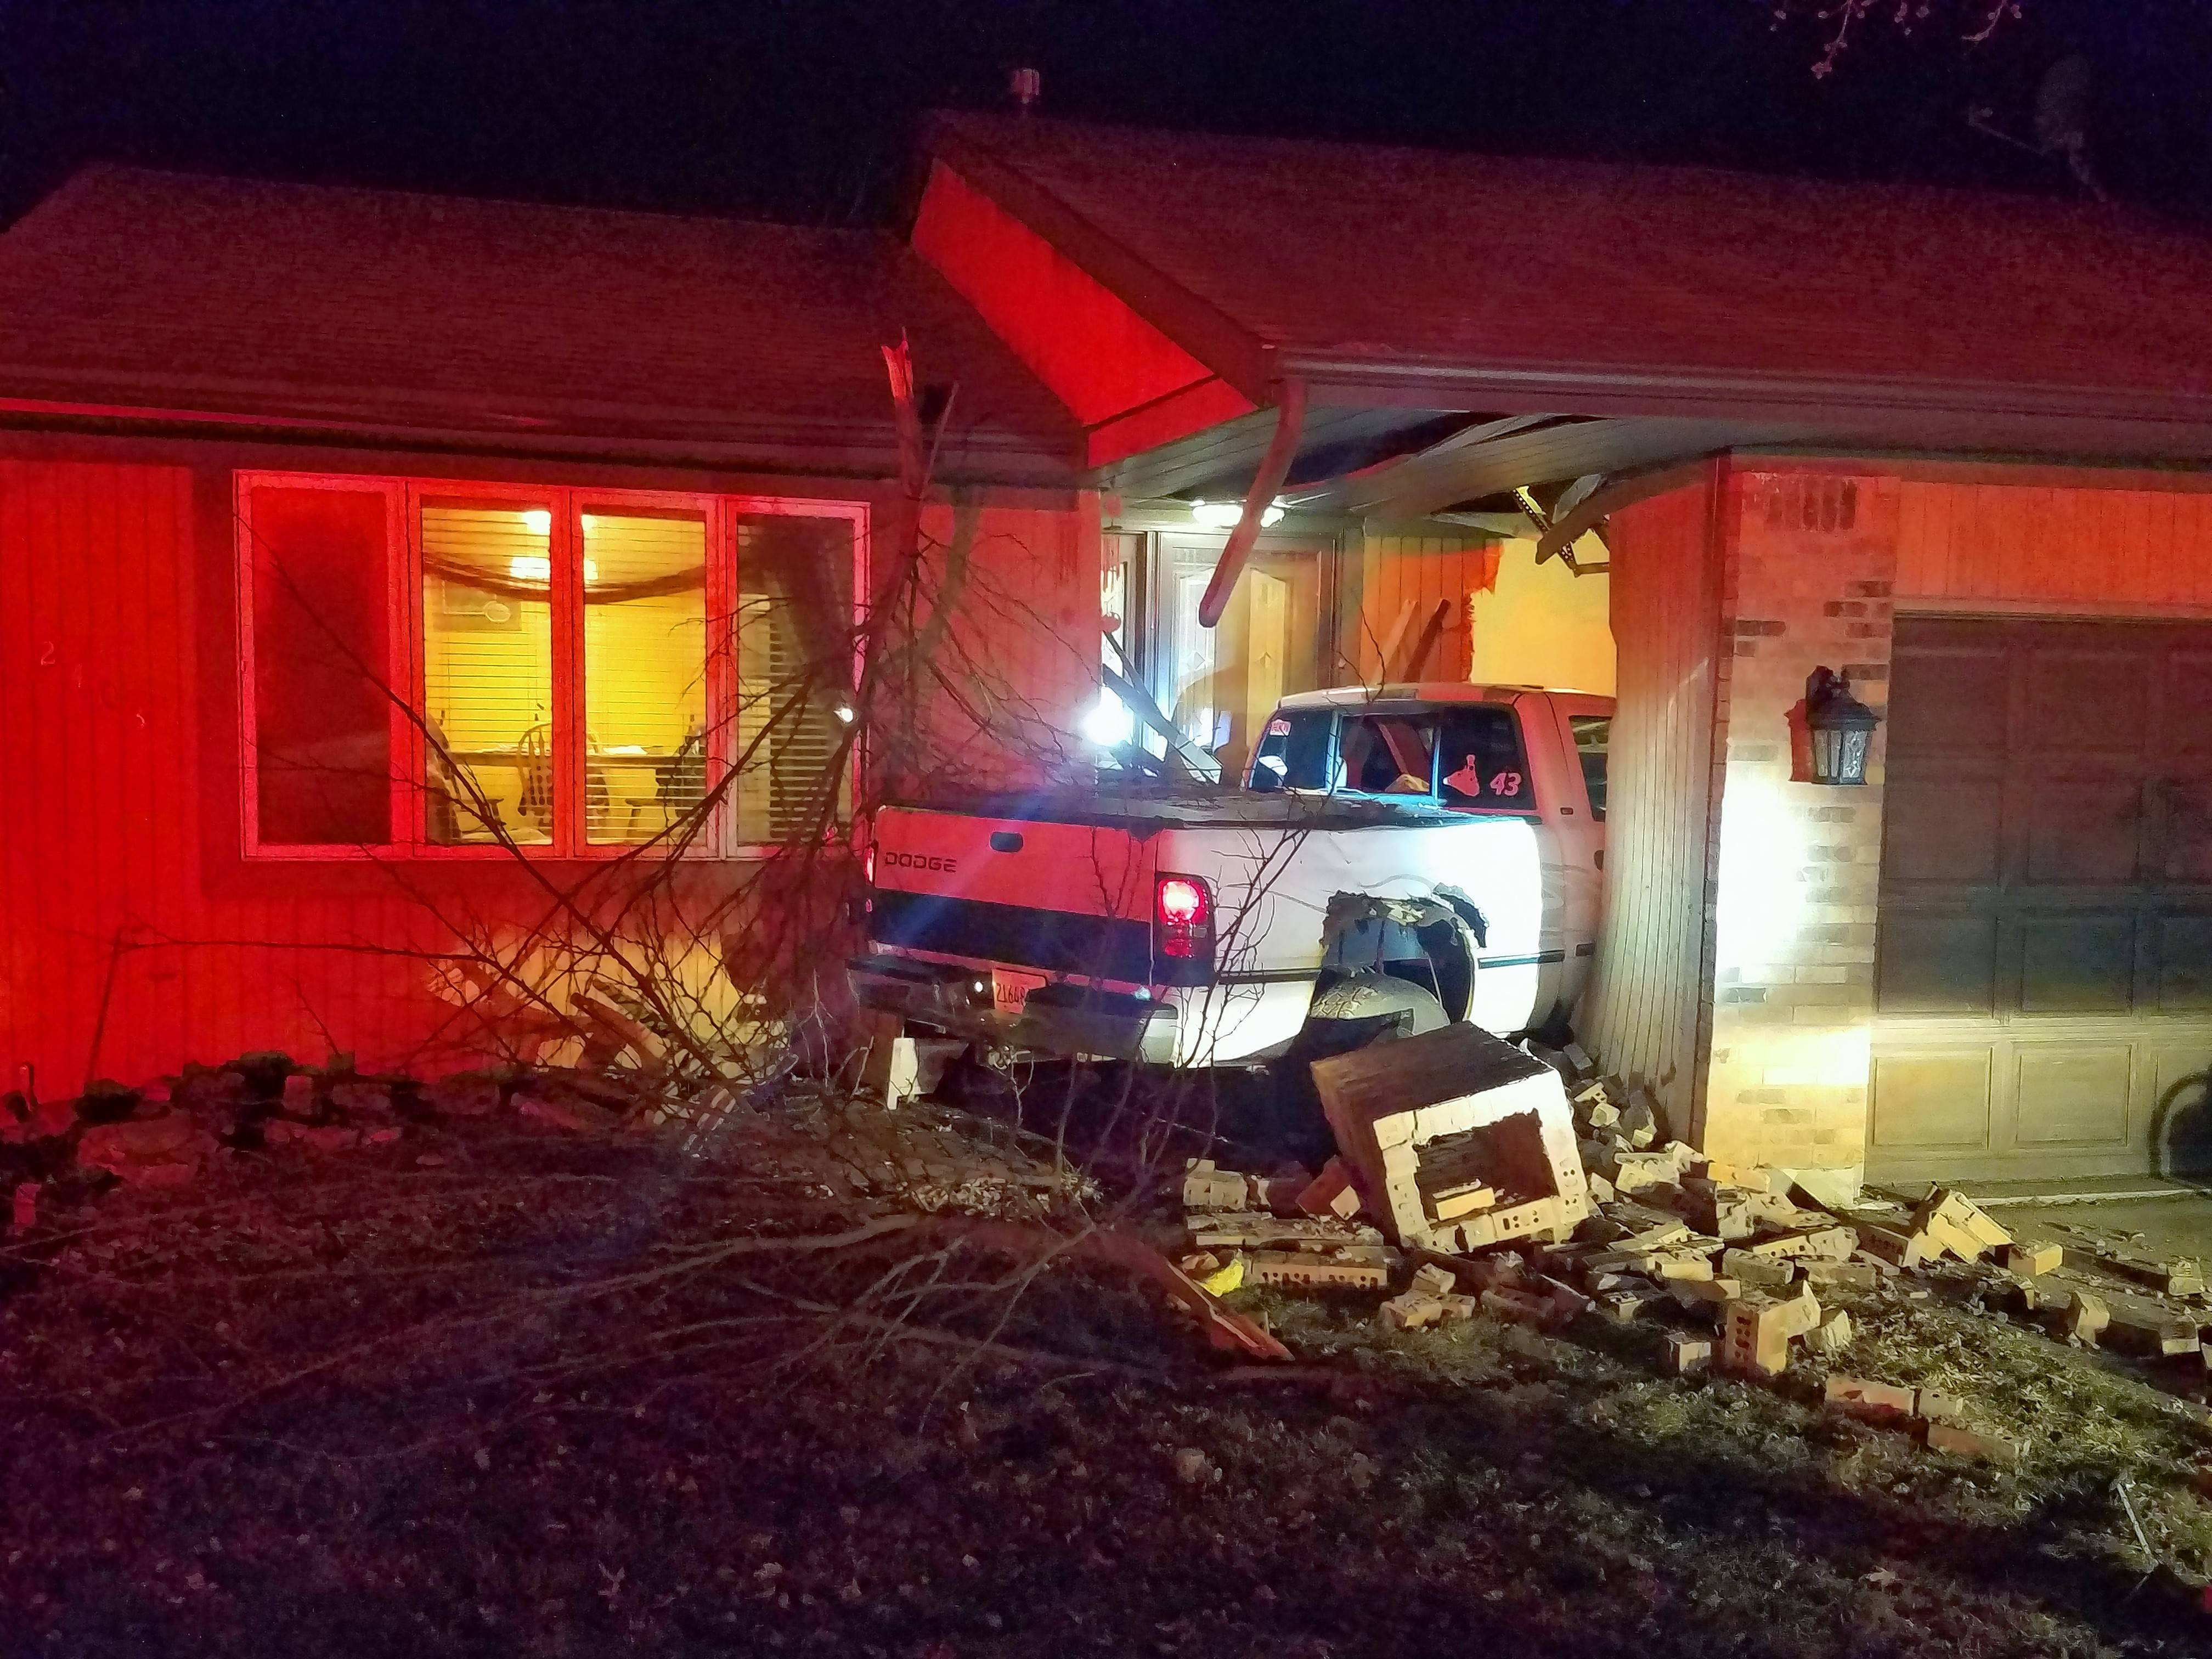 A Holiday Hills man was awakened by a loud boom early Sunday when a pickup truck crashed into his garage.